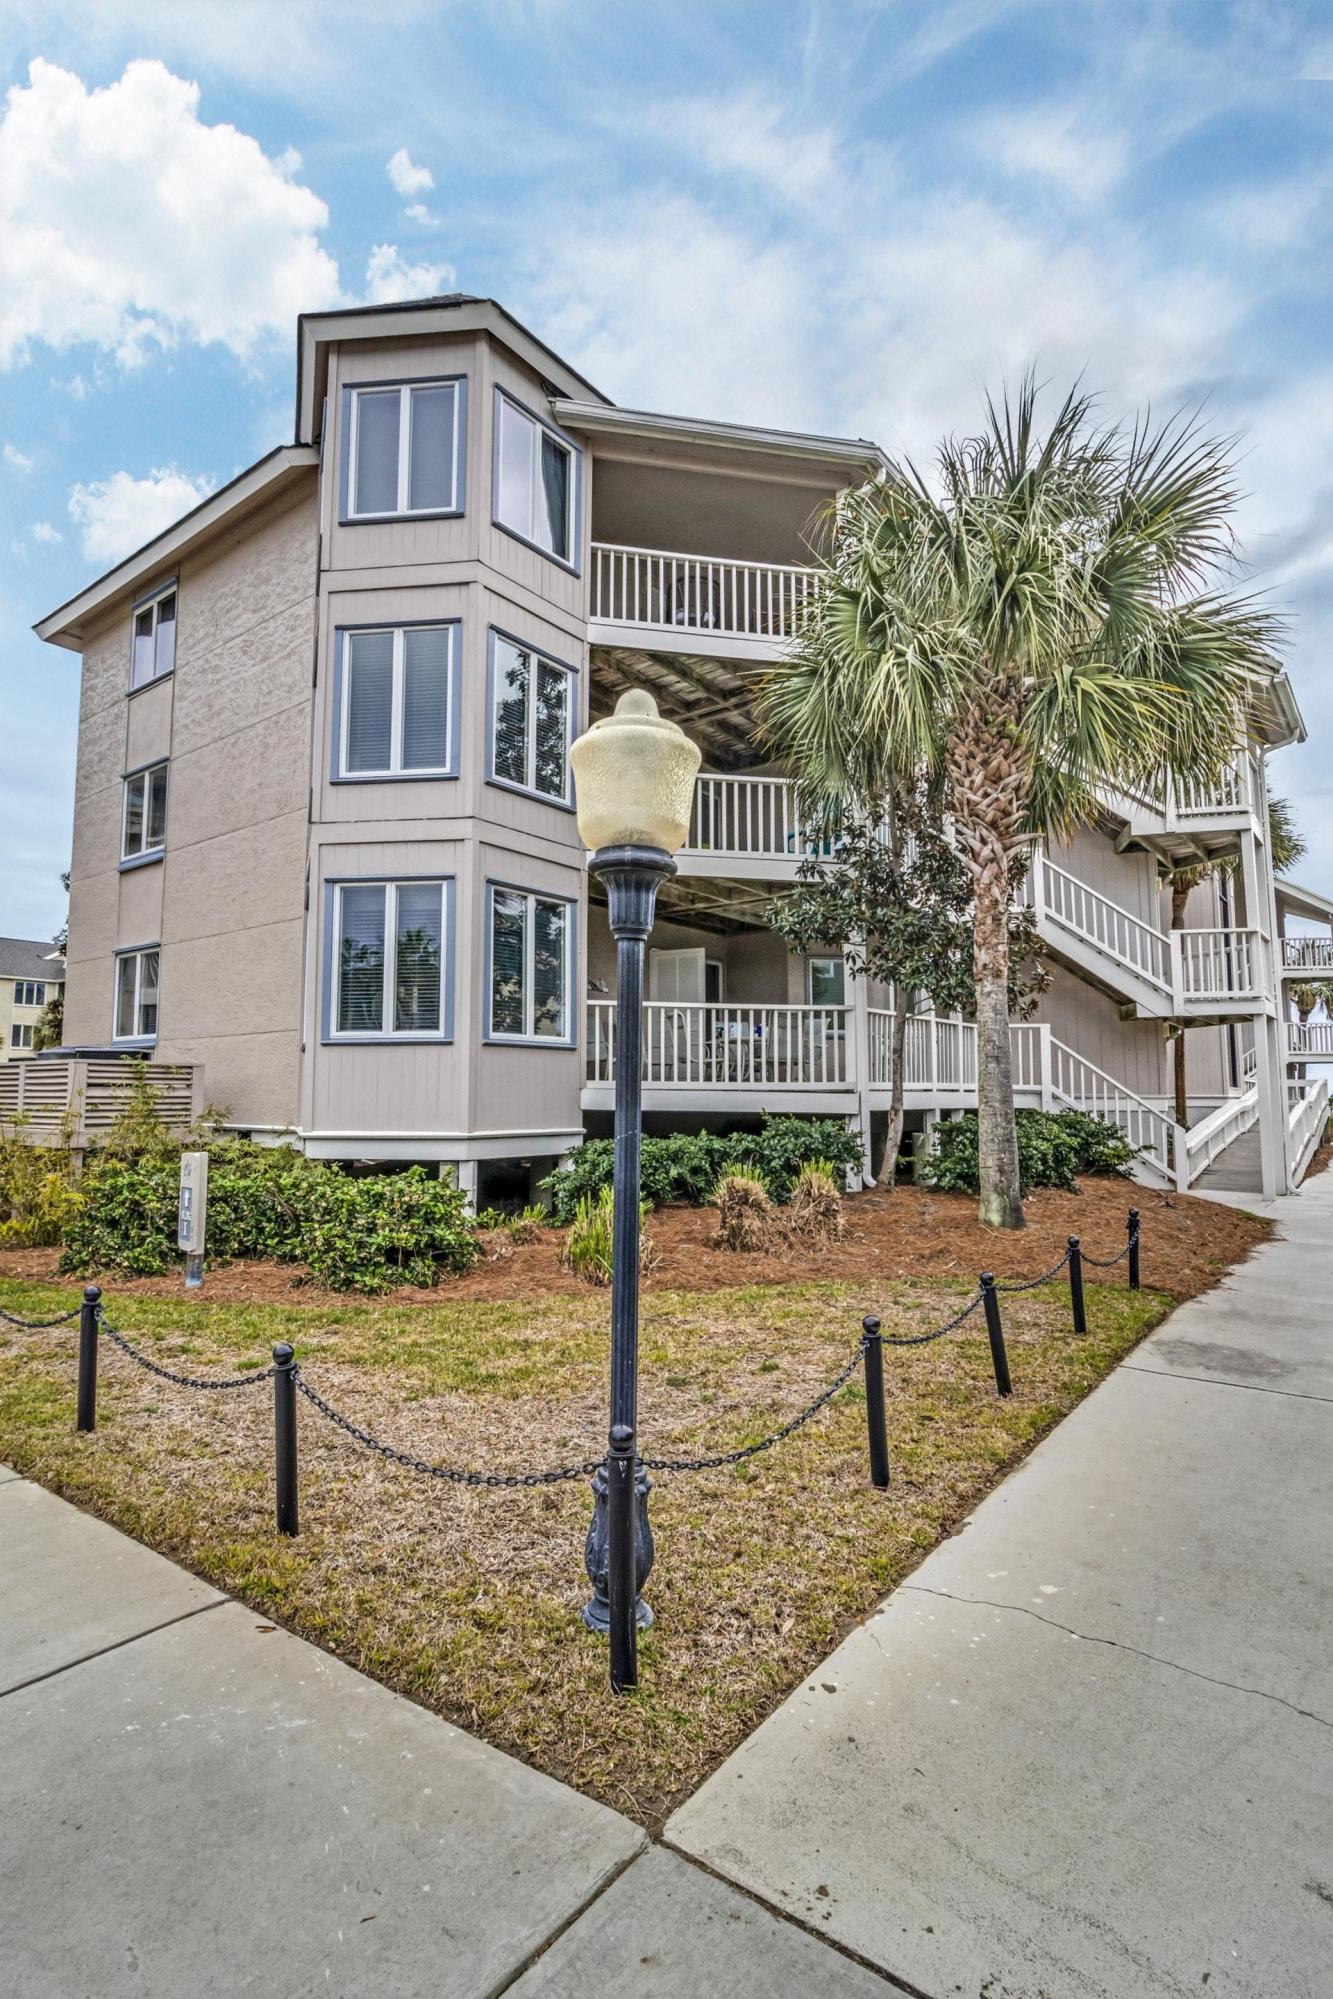 102-I Tidewater Isle Of Palms, SC 29451